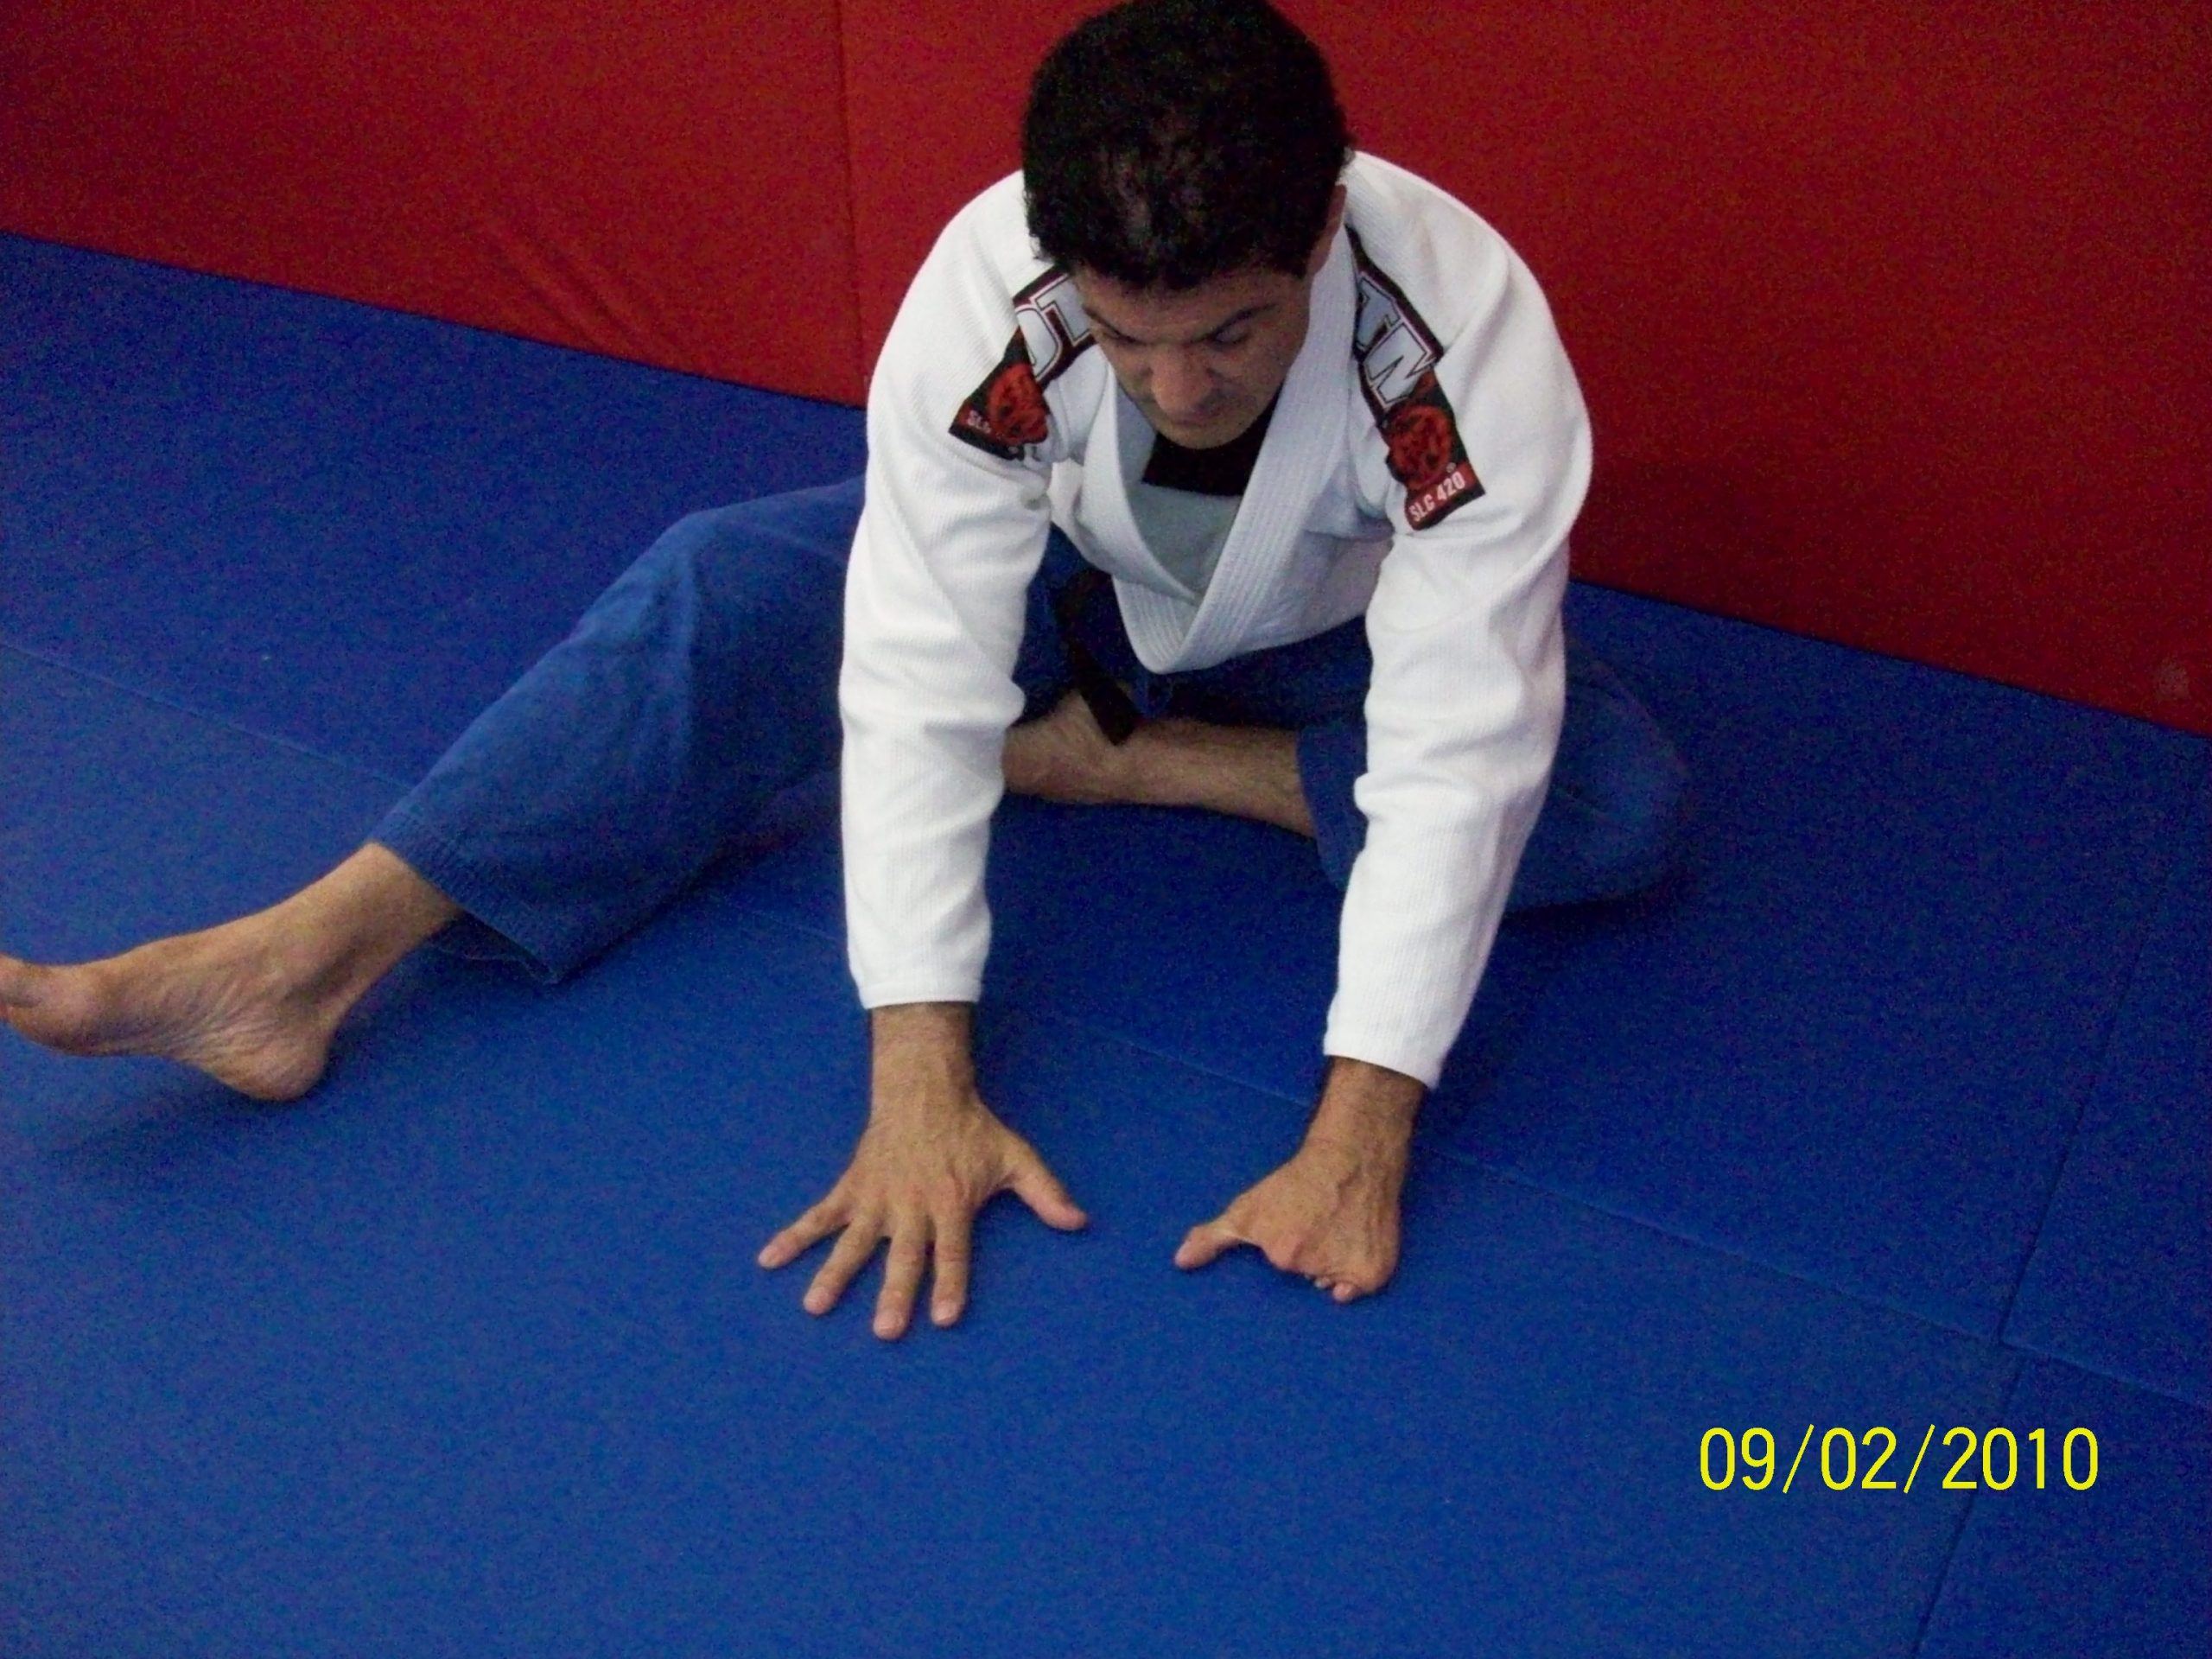 Training with Jean Jacques Machado Online and in Person